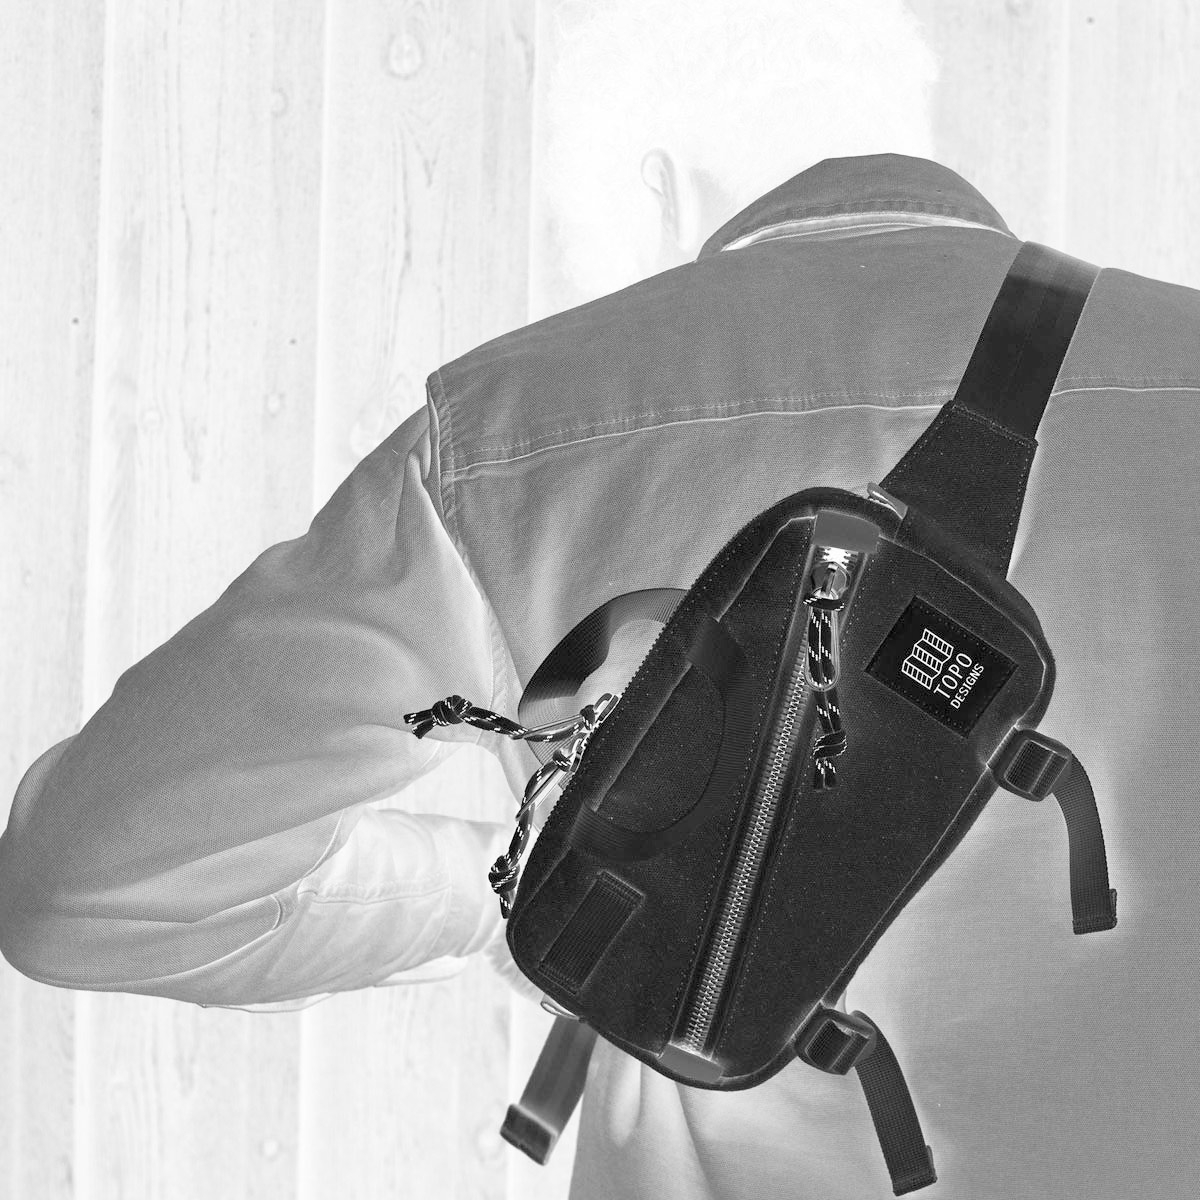 Topo Designs Mini Quick Pack Canvas Black, a well-built, secure bag for travel